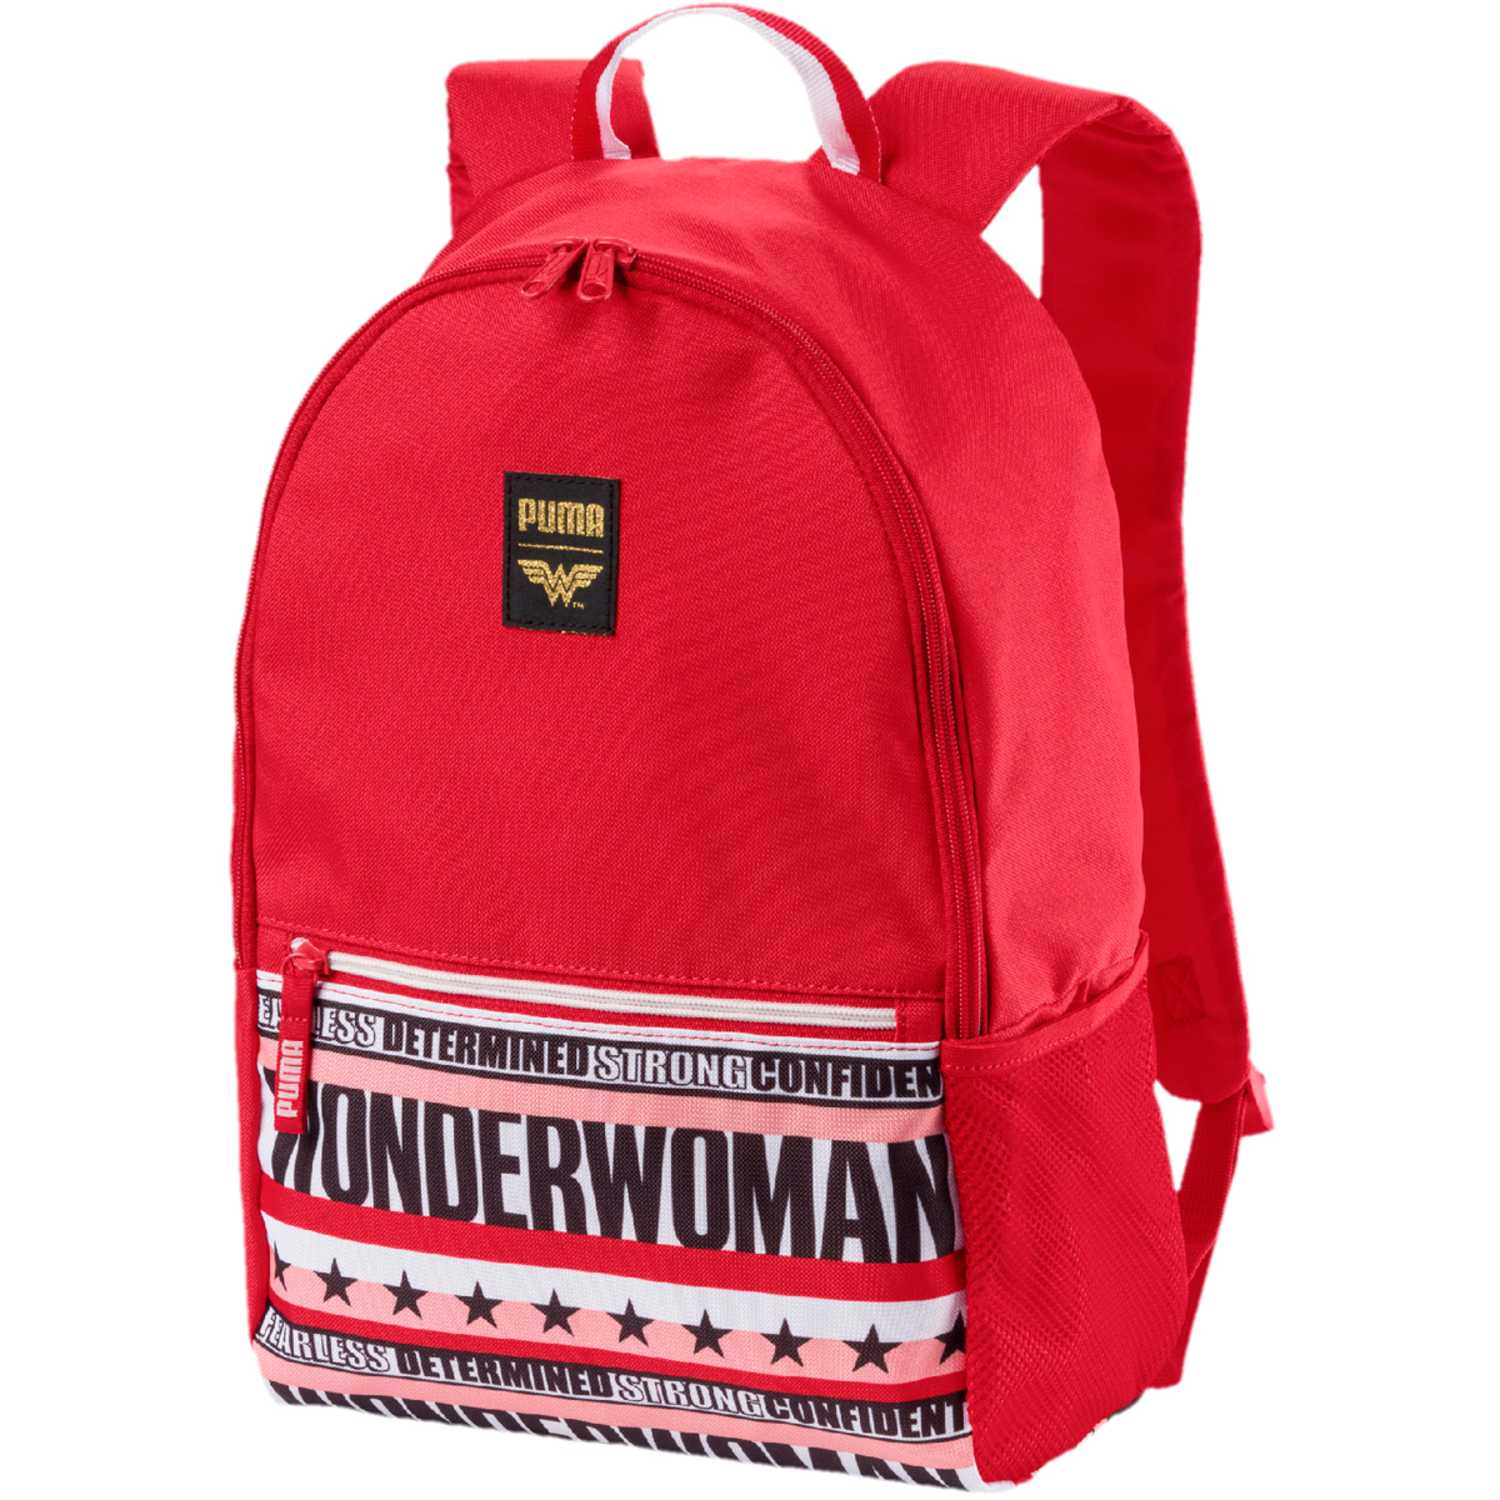 Mochila de Niña Puma Rojo / blanco justice league large backpac